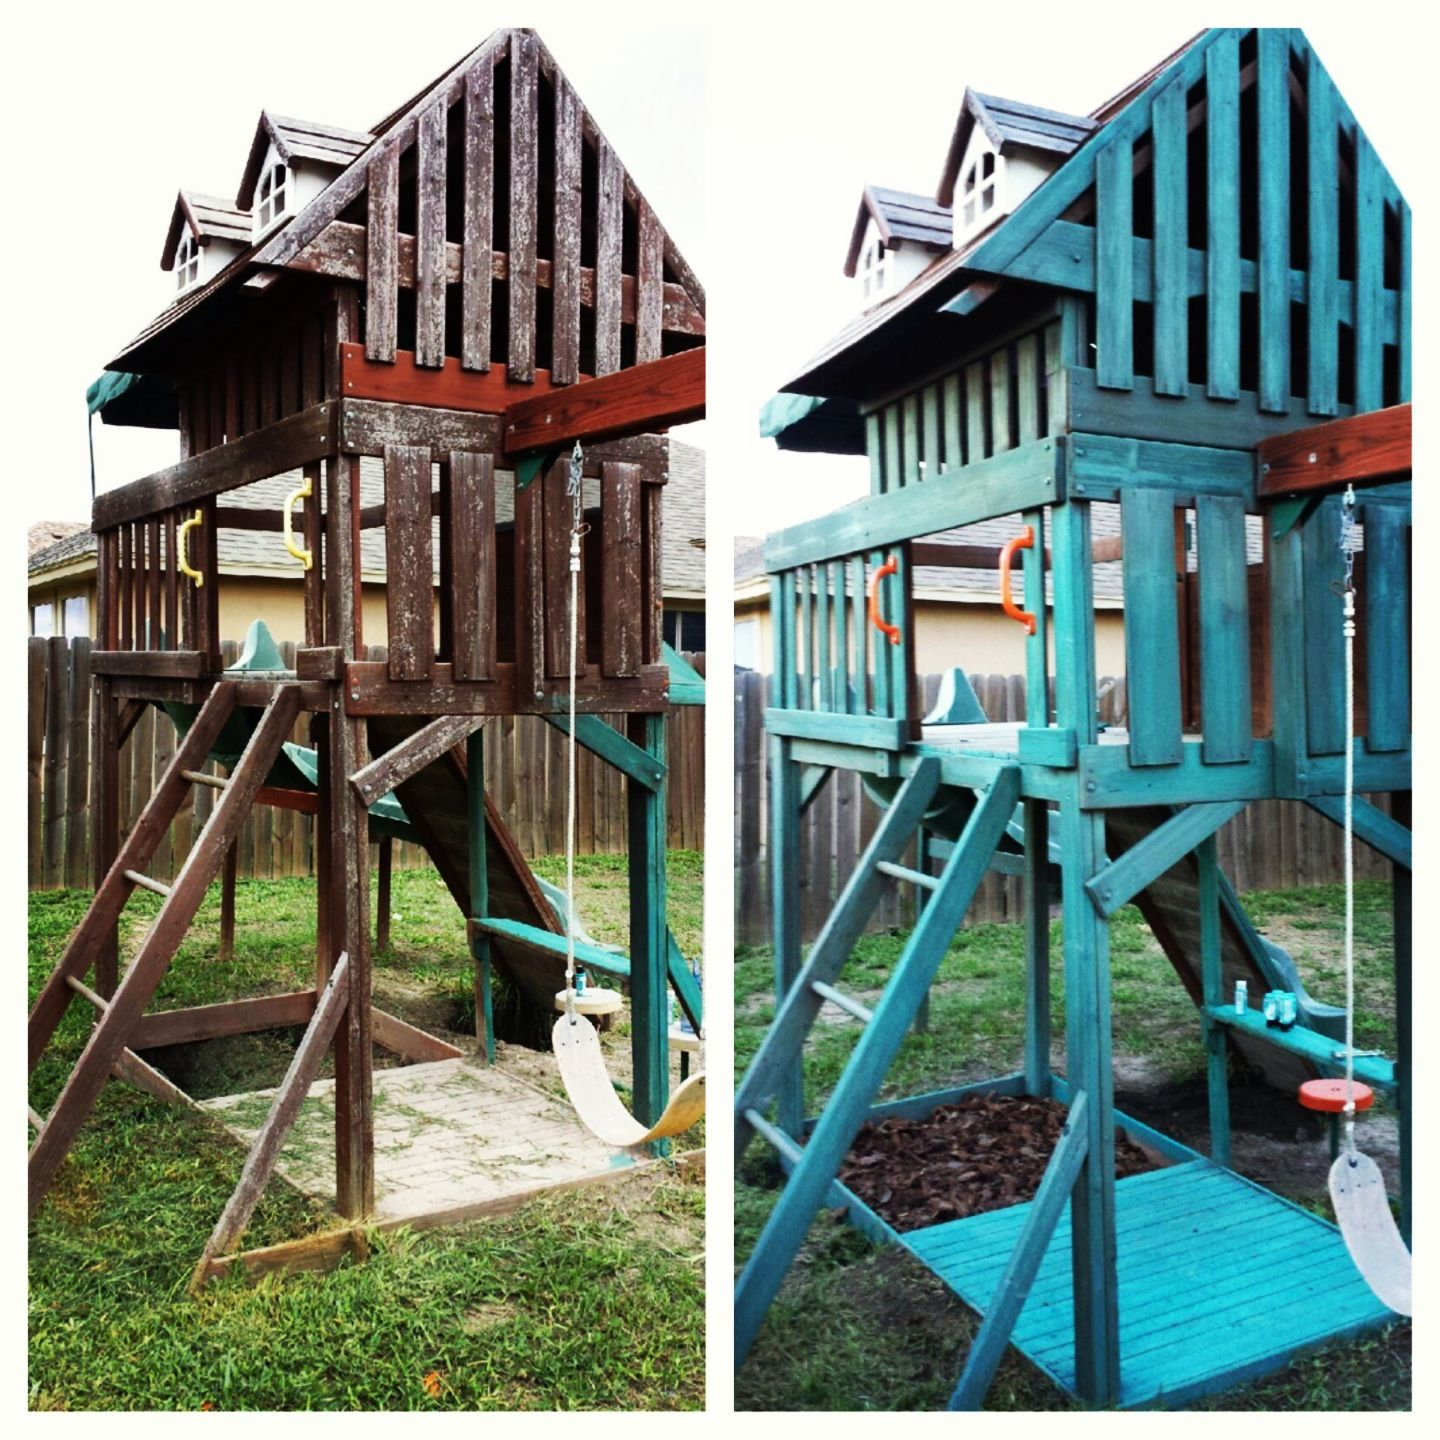 Before And After Swing Set Makeover Swing Set Repaint Cedar Wood Painted With Watered Down Acrylic To Give Backyard Playset Backyard Play Playset Landscaping